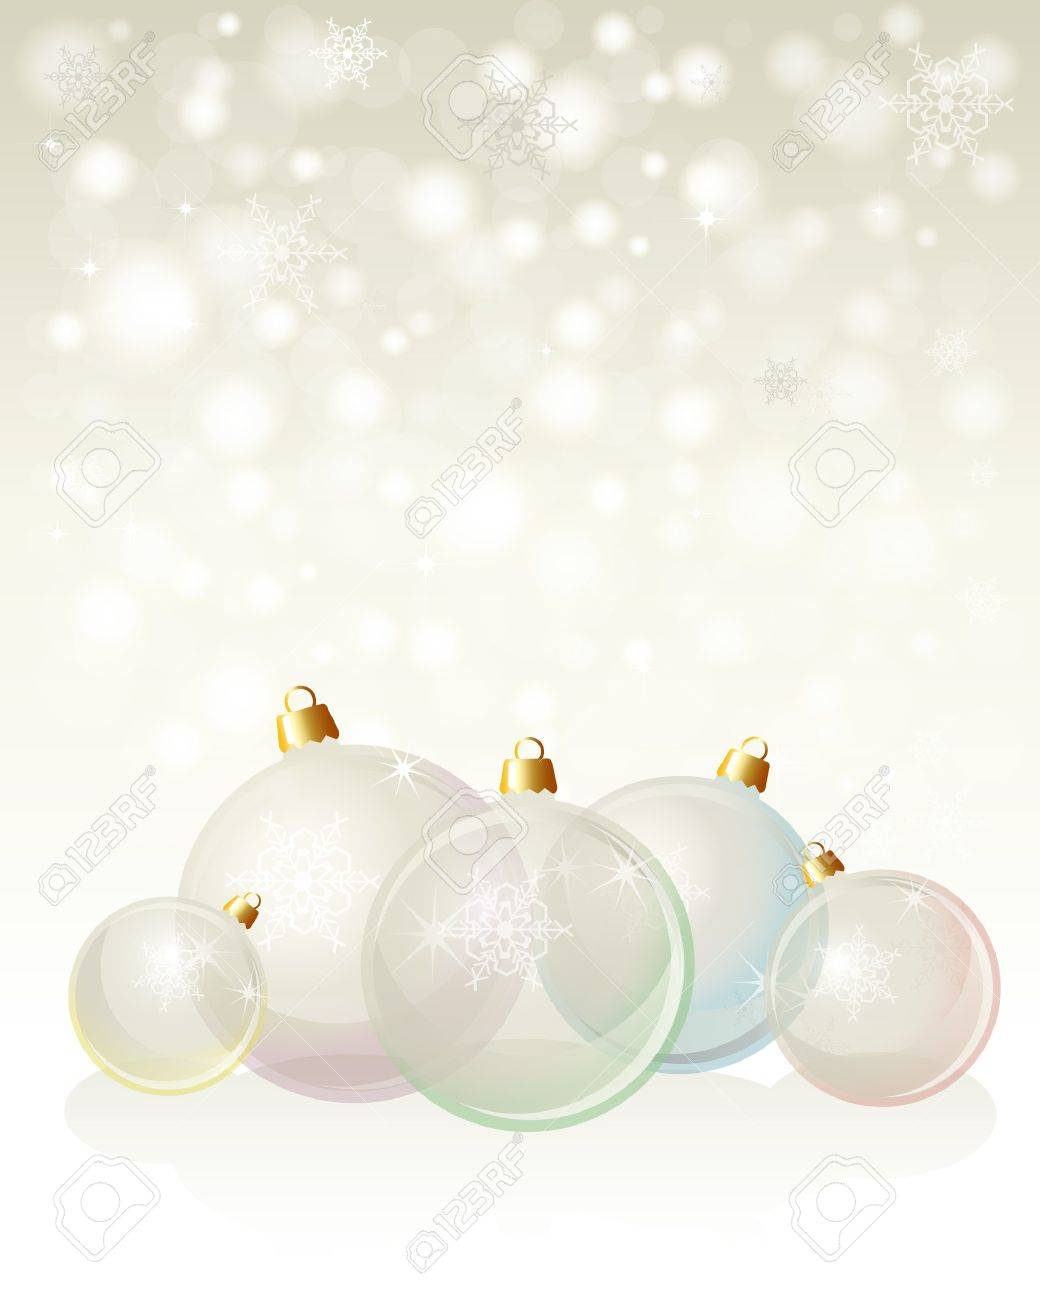 Glass Christmas baubles on snowflake background with space for your text. Neutral background with pastel, transparent glass baubles. EPS10 vector format. Stock Vector - 10631682